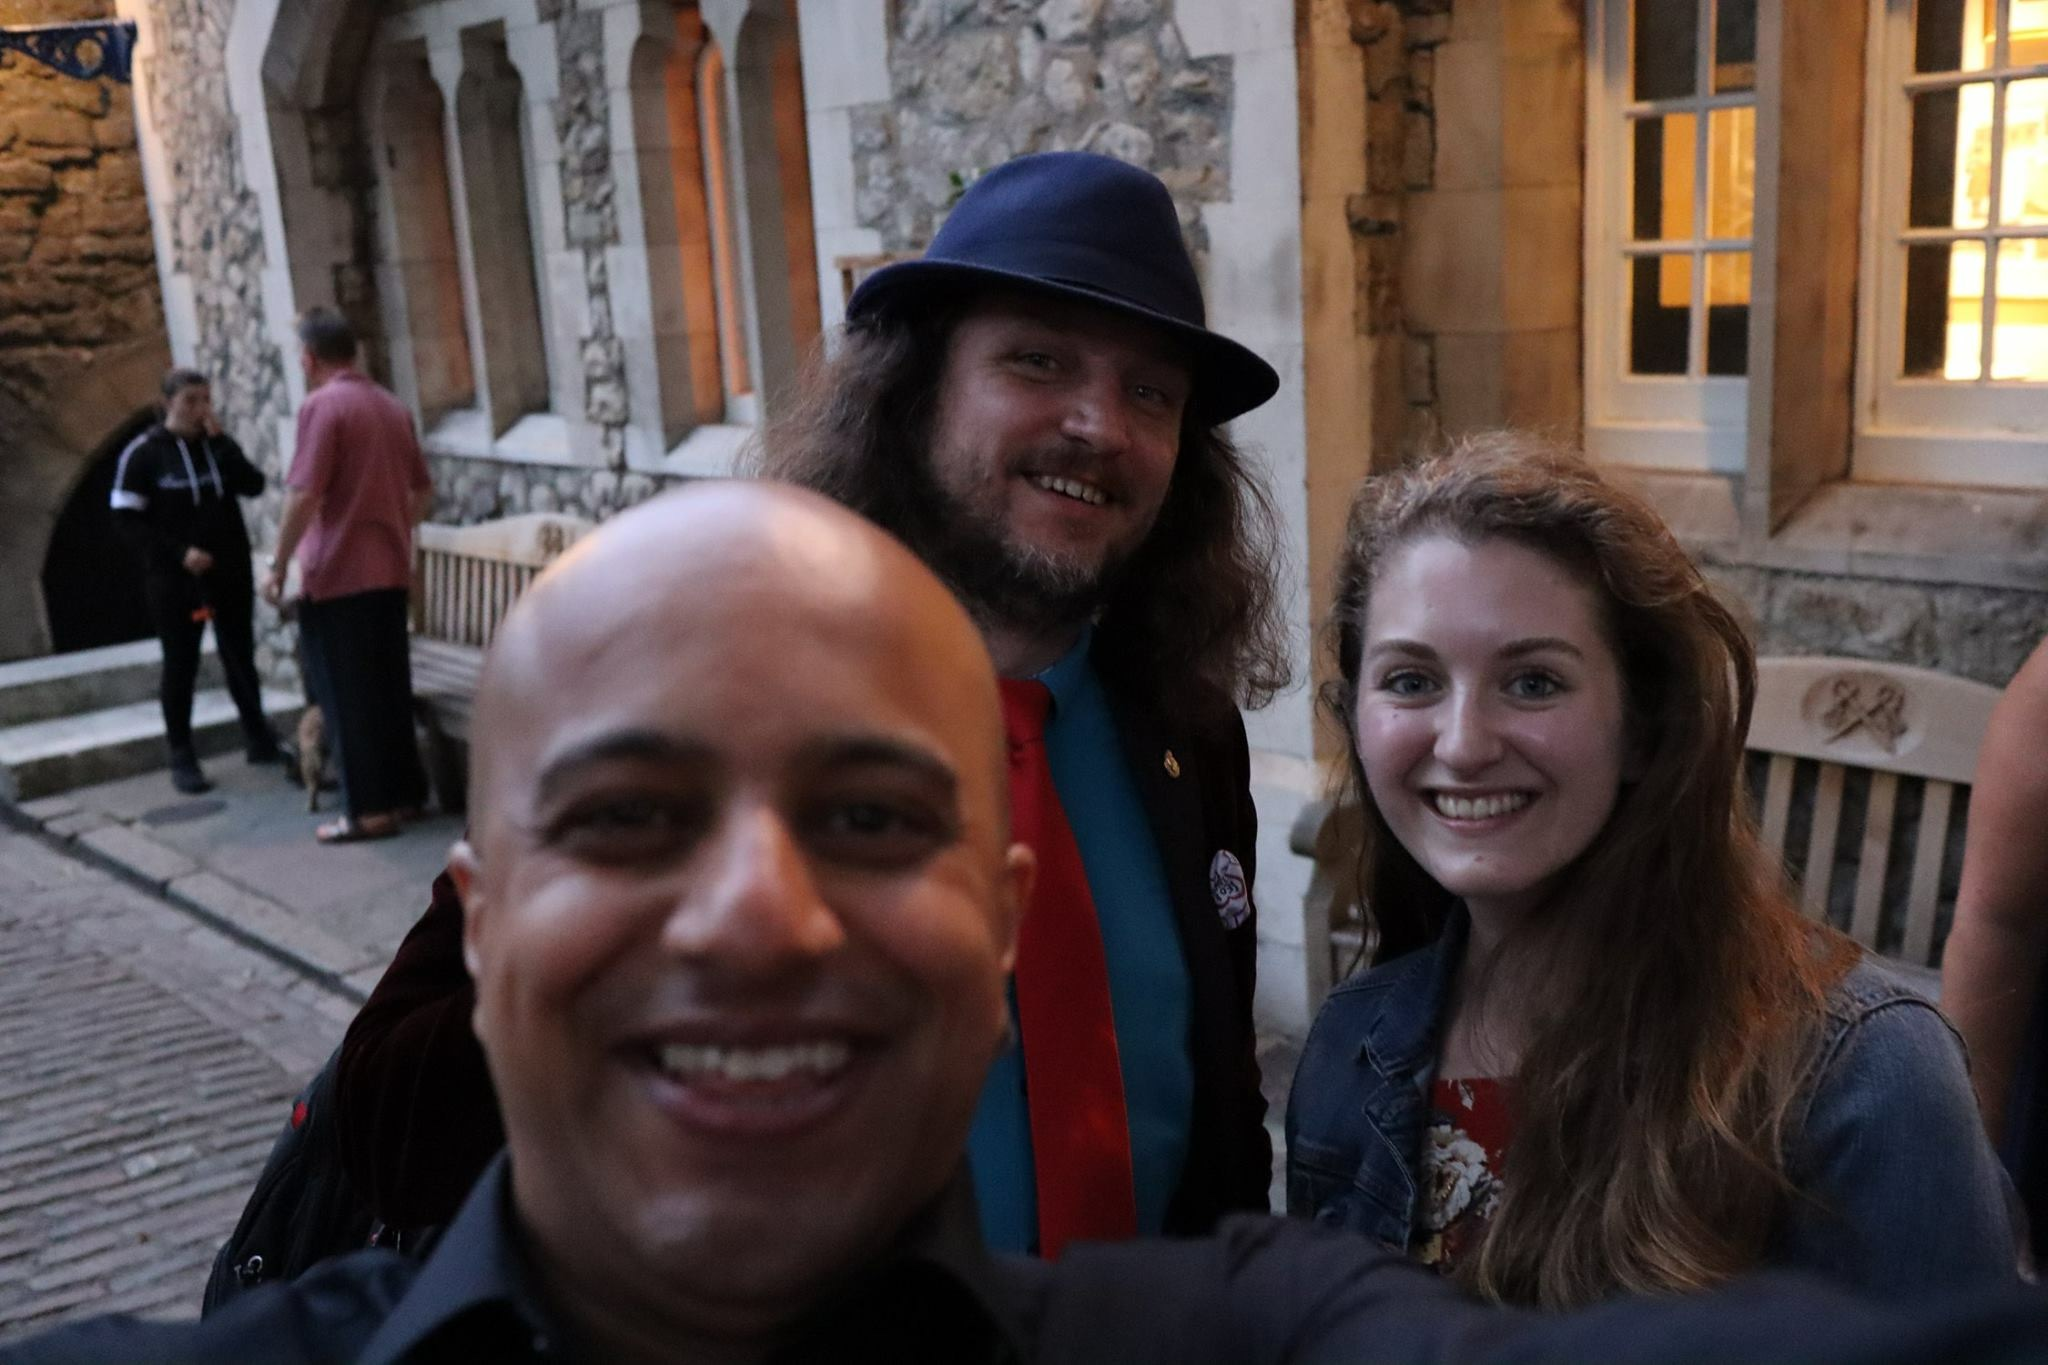 Tower of London with the SEO experts